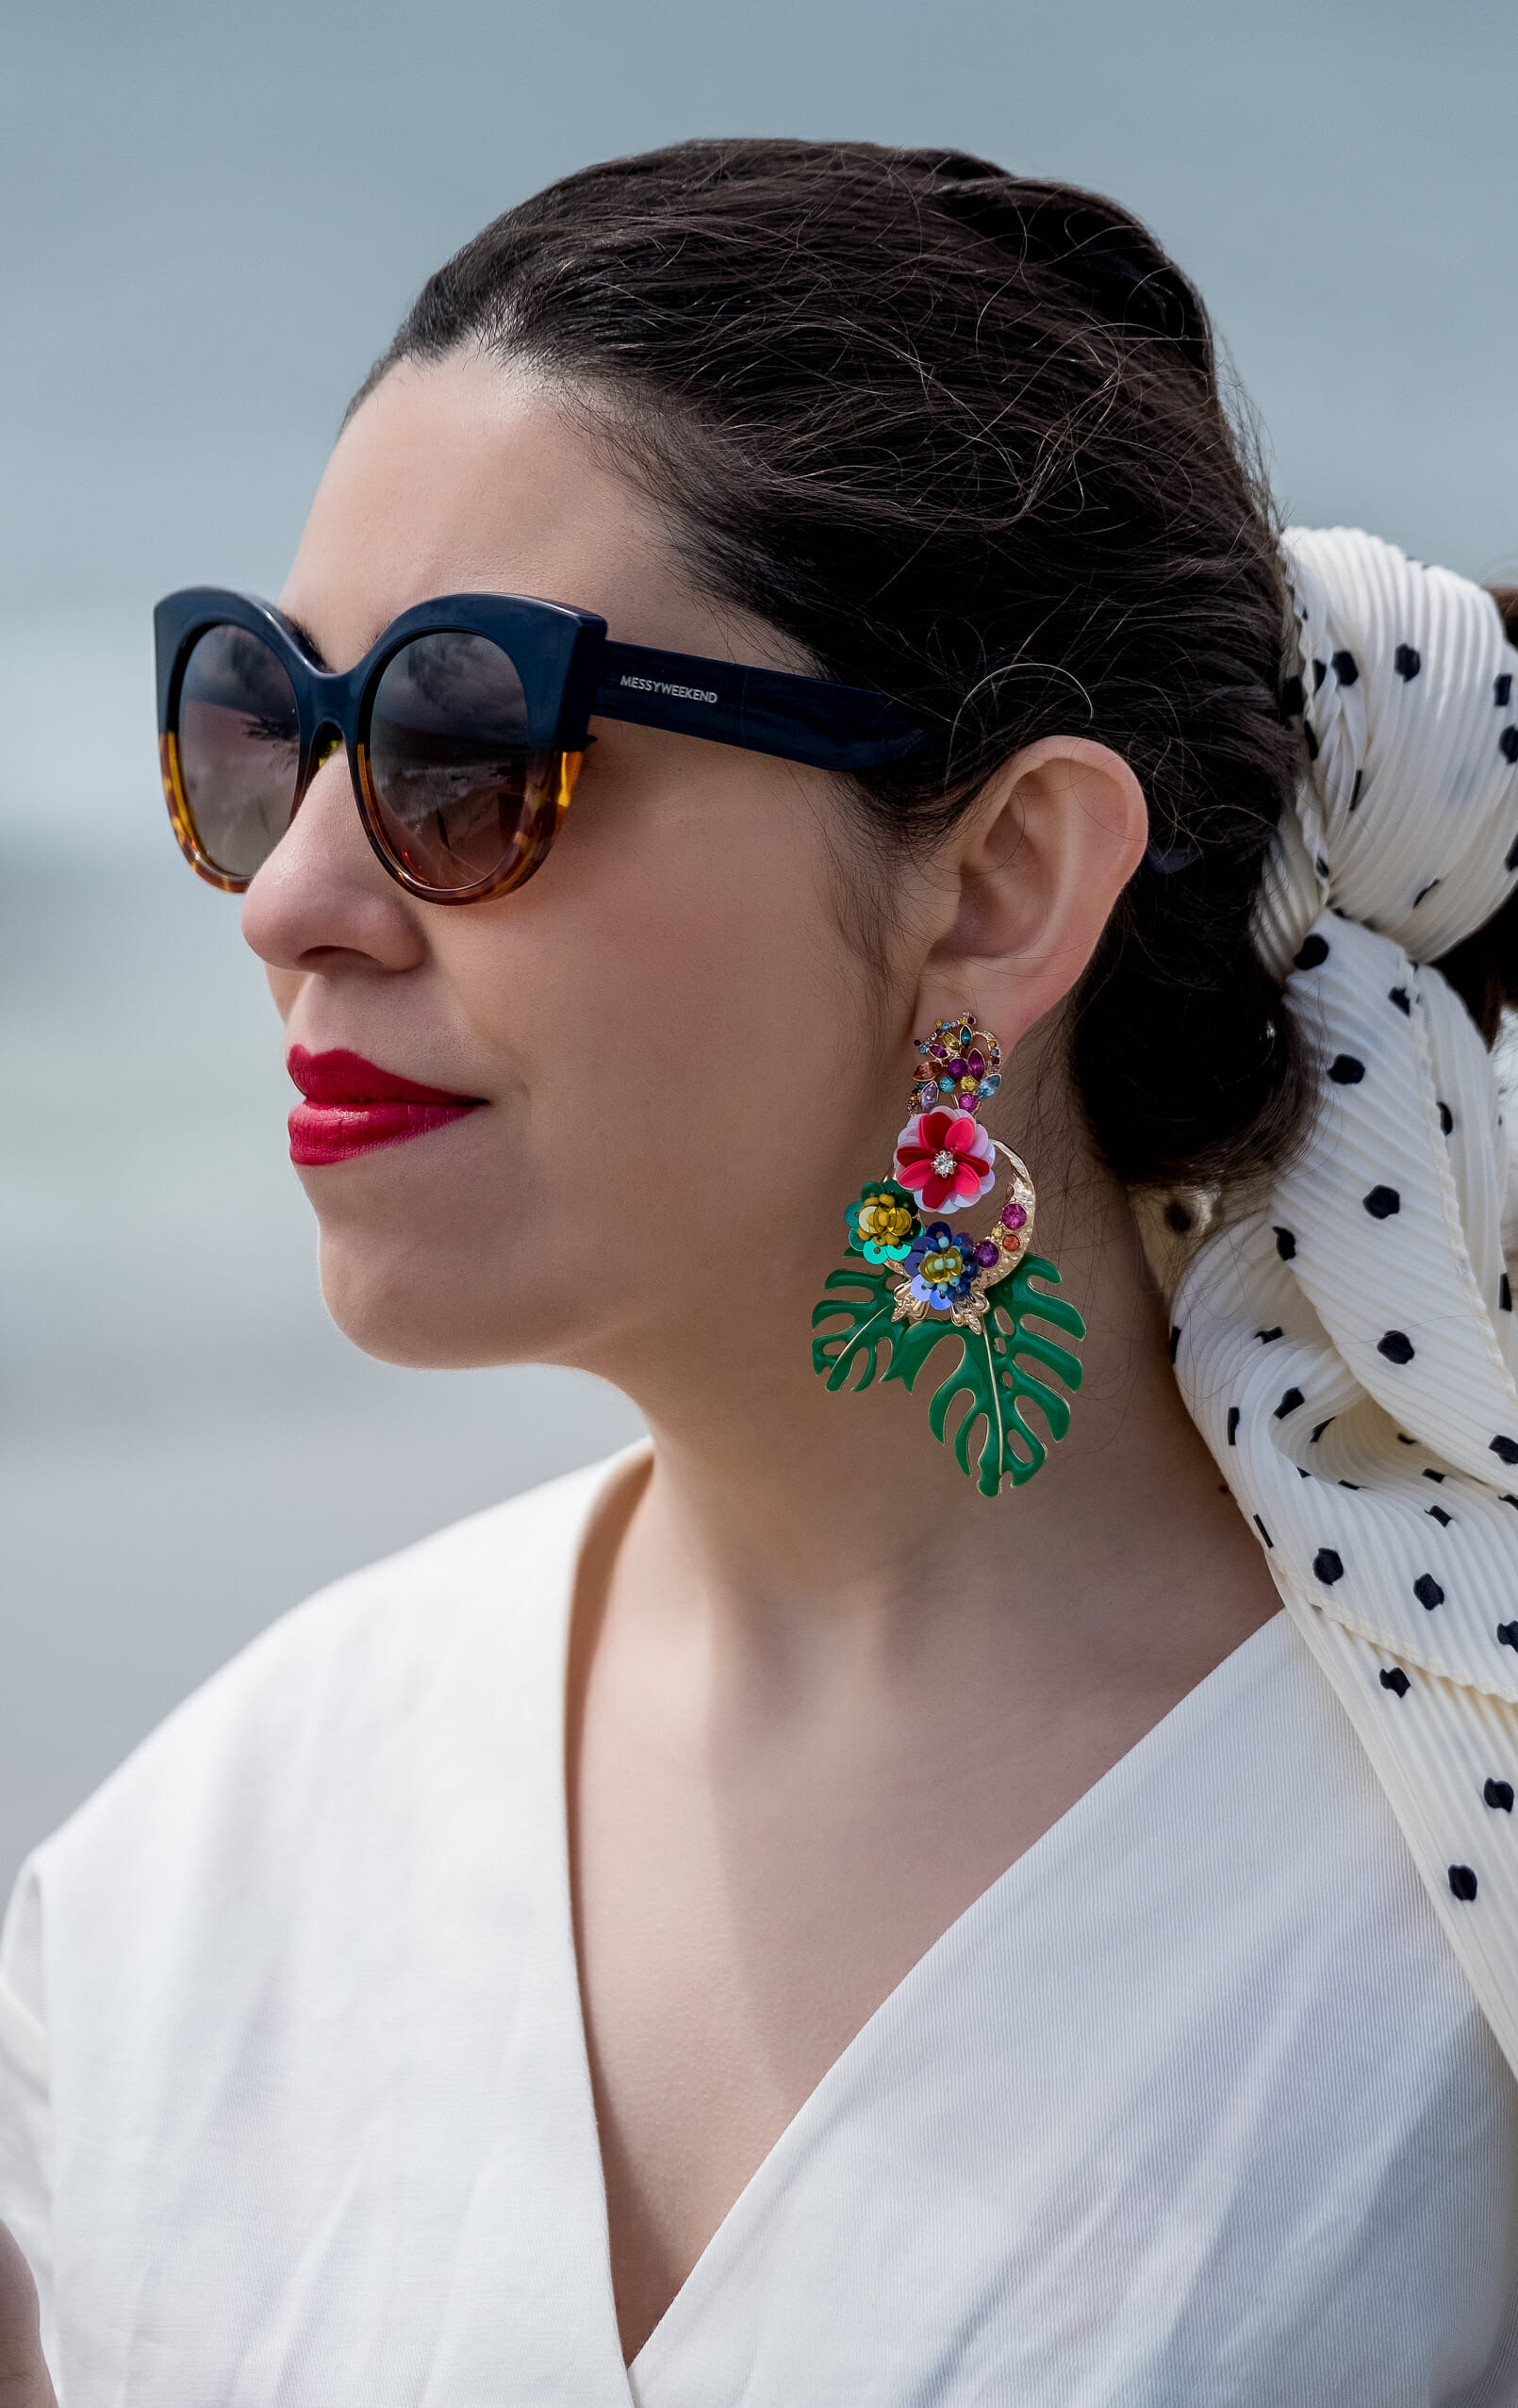 Le Fashionaire white black polka dots scarf zara green leave flowers bold earrings sunglasses cat eye messyweekend promocode 8901 EN white black polka dots scarf zara green leave flowers bold earrings sunglasses cat eye messyweekend promocode 8901 EN